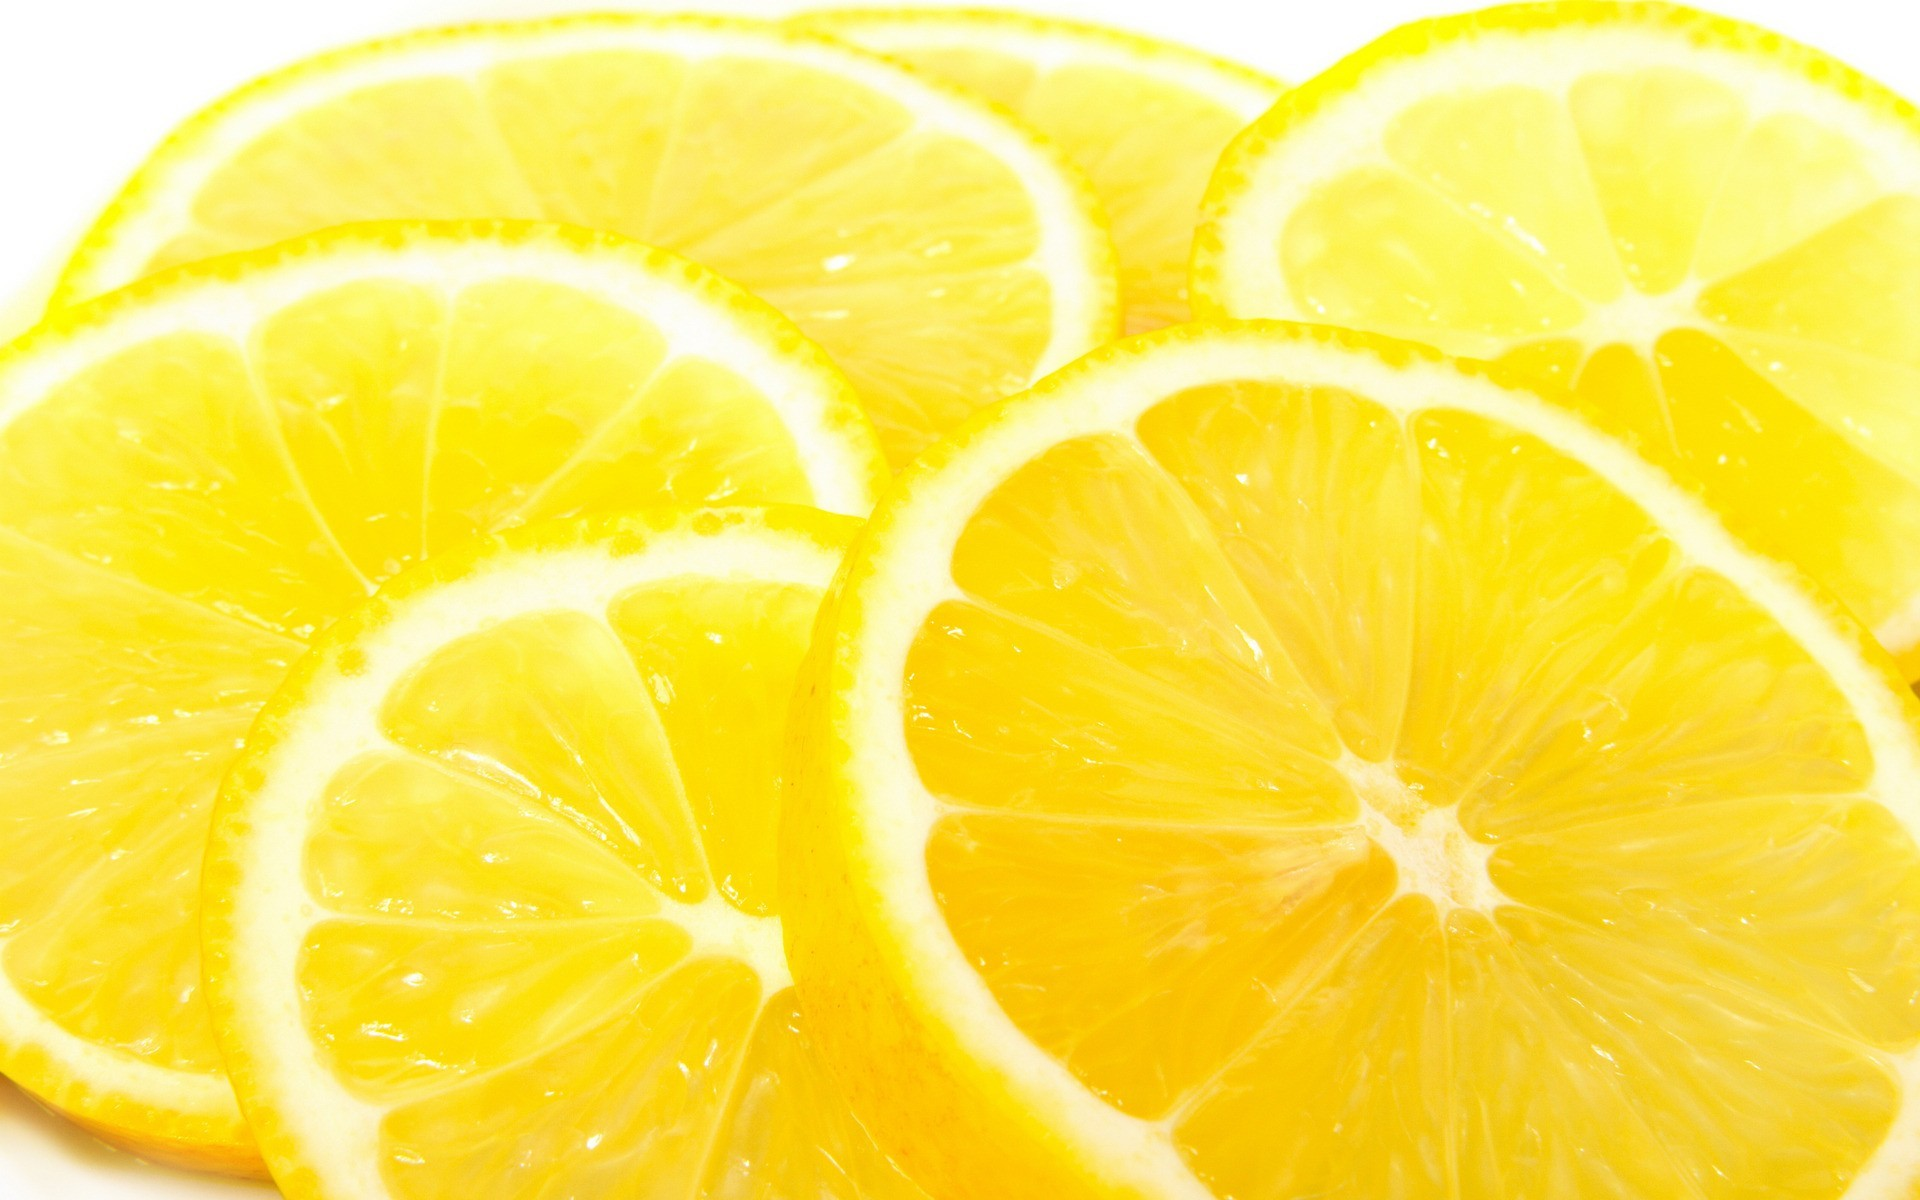 close-up fruits food lemons HD Wallpaper